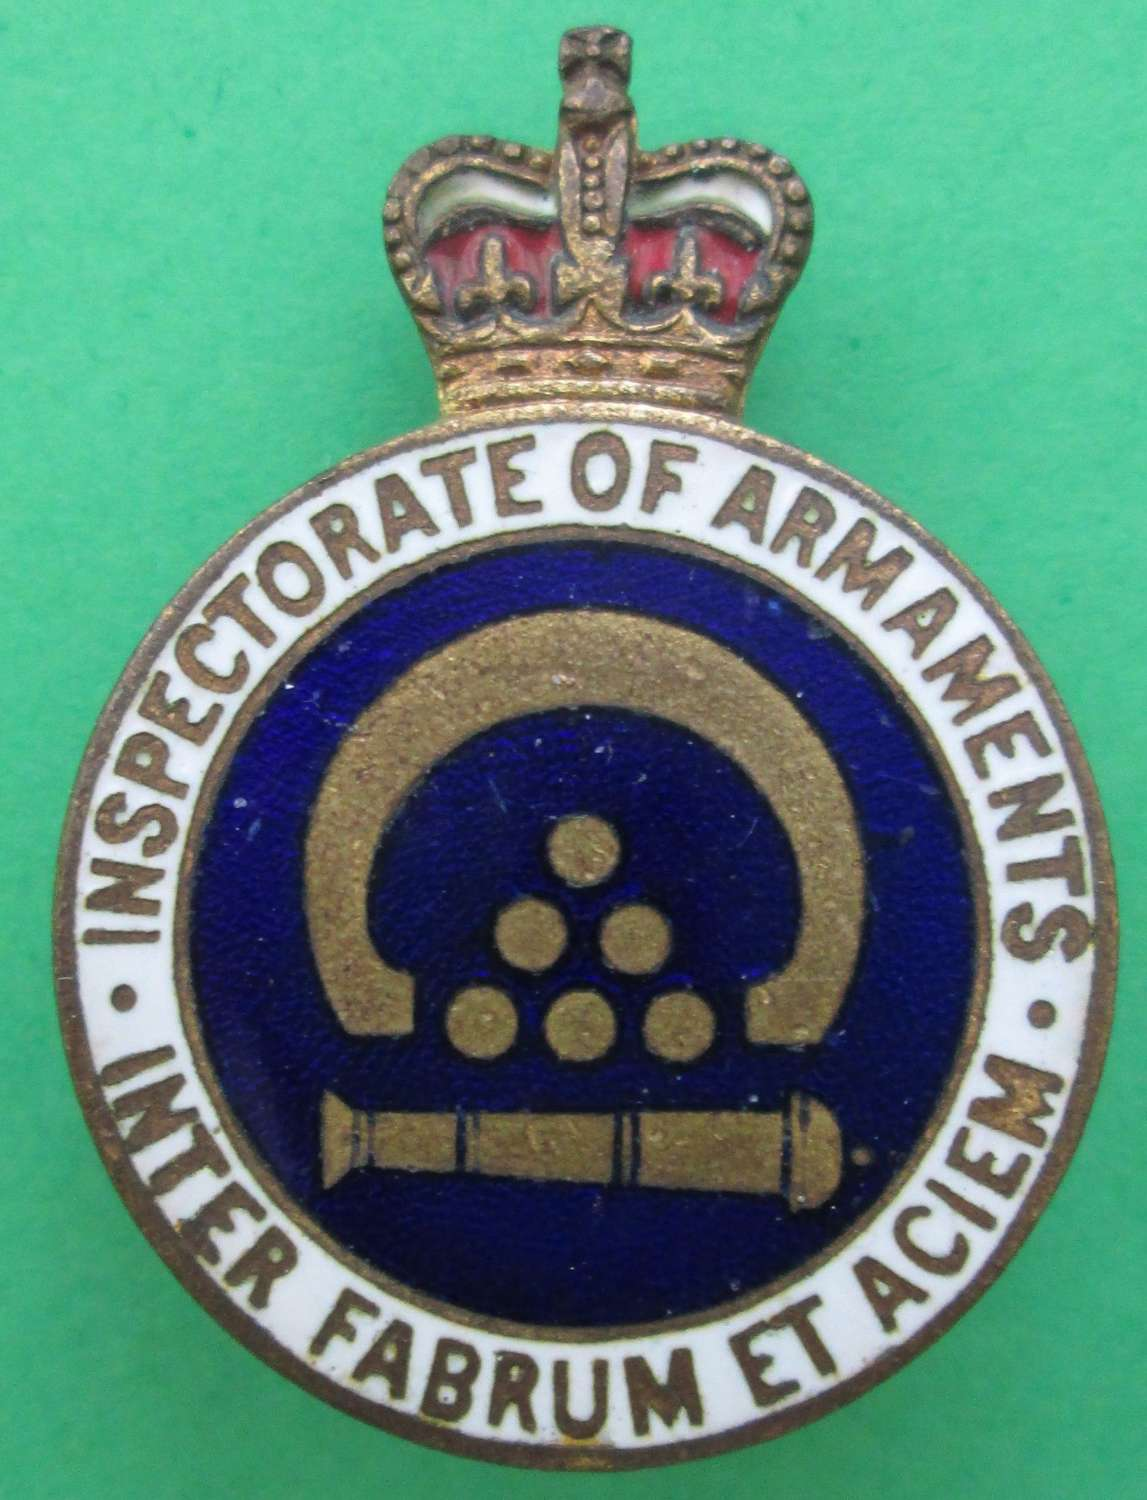 ENAMEL BADGE FOR THE INSPECTORATE OF ARMAMENTS